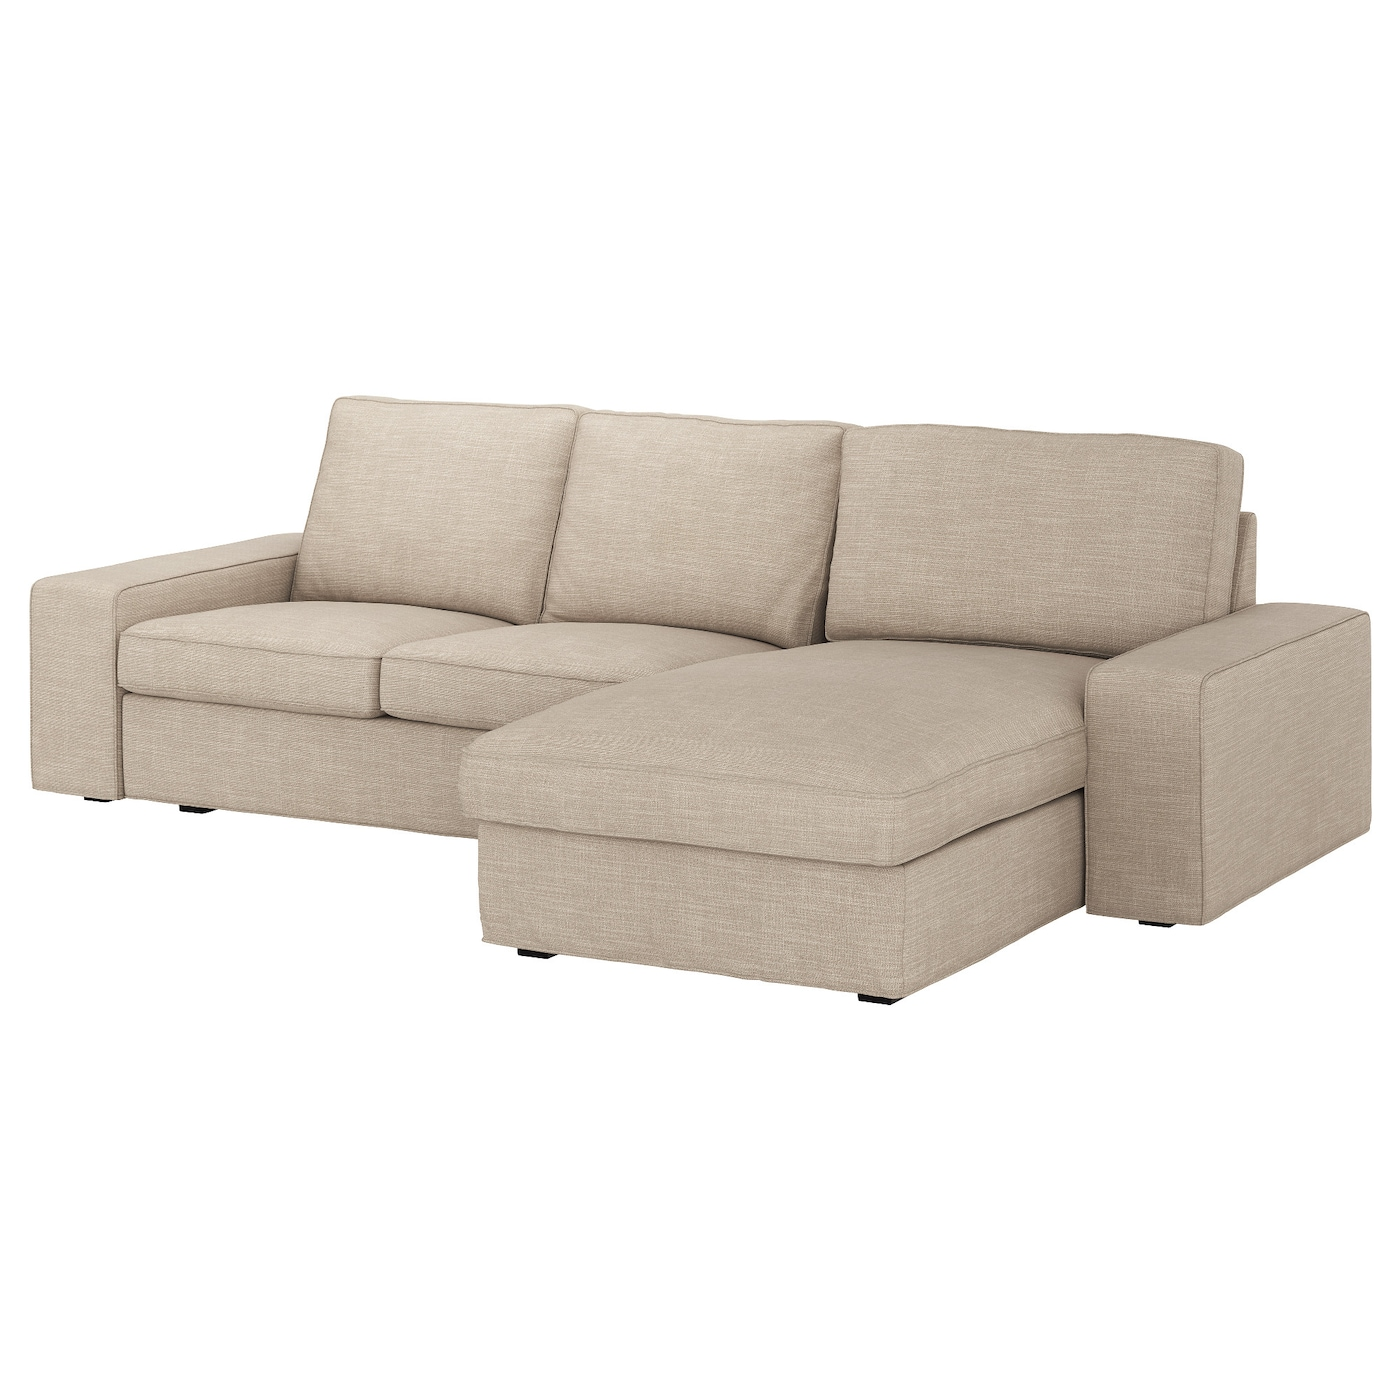 Kivik 3 seat sofa with chaise longue hillared beige ikea for 3 seat sofa with chaise